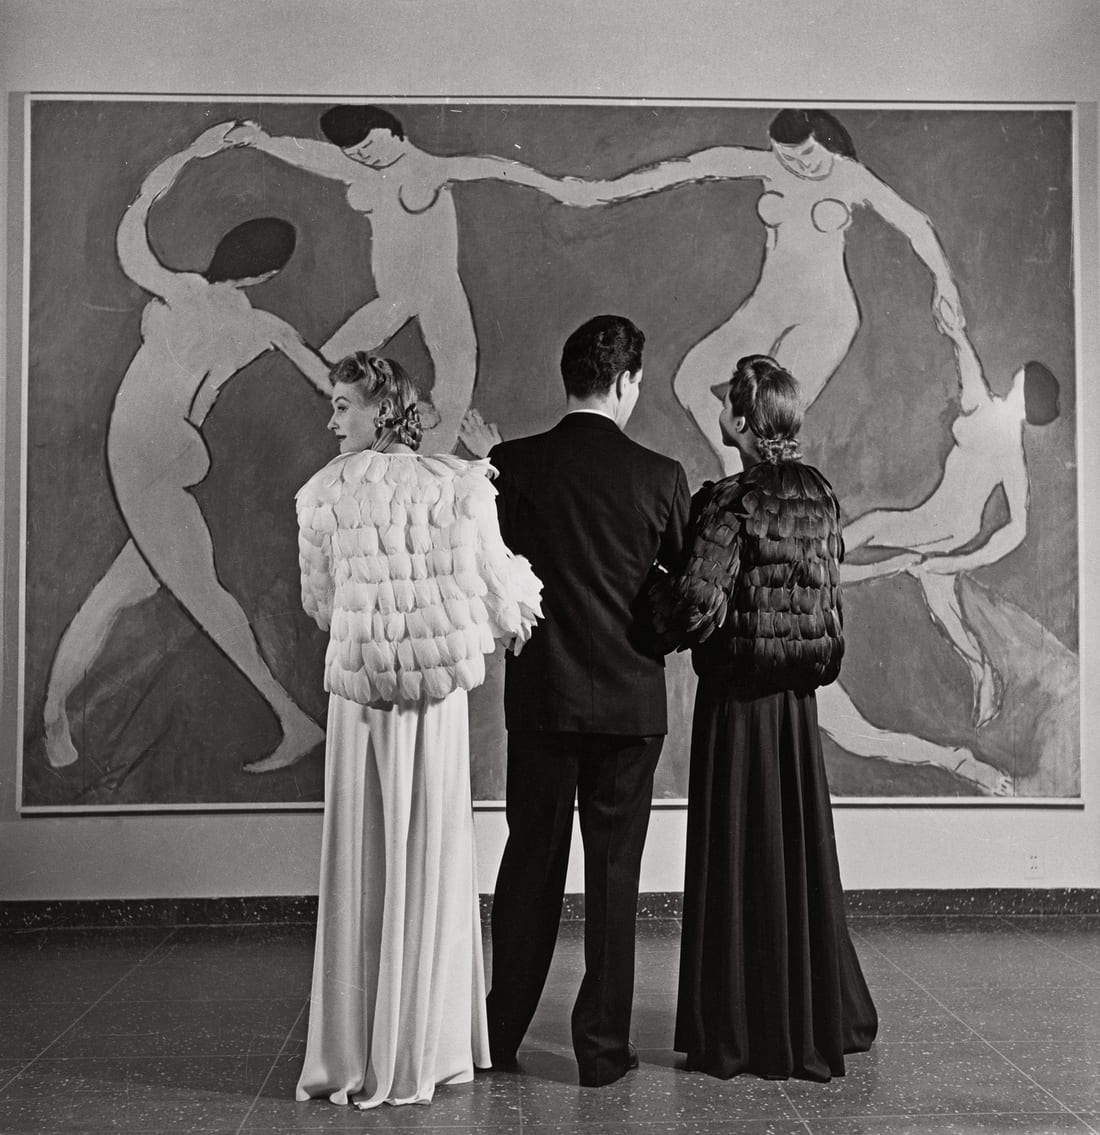 Fotó: Louise Dahl-Wolfe: Looking at Matisse, Museum of Modern Art, 1939 © Courtesy Louise Dahl-Wolfe/Center for Creative Photography/Arizona Board of Regents